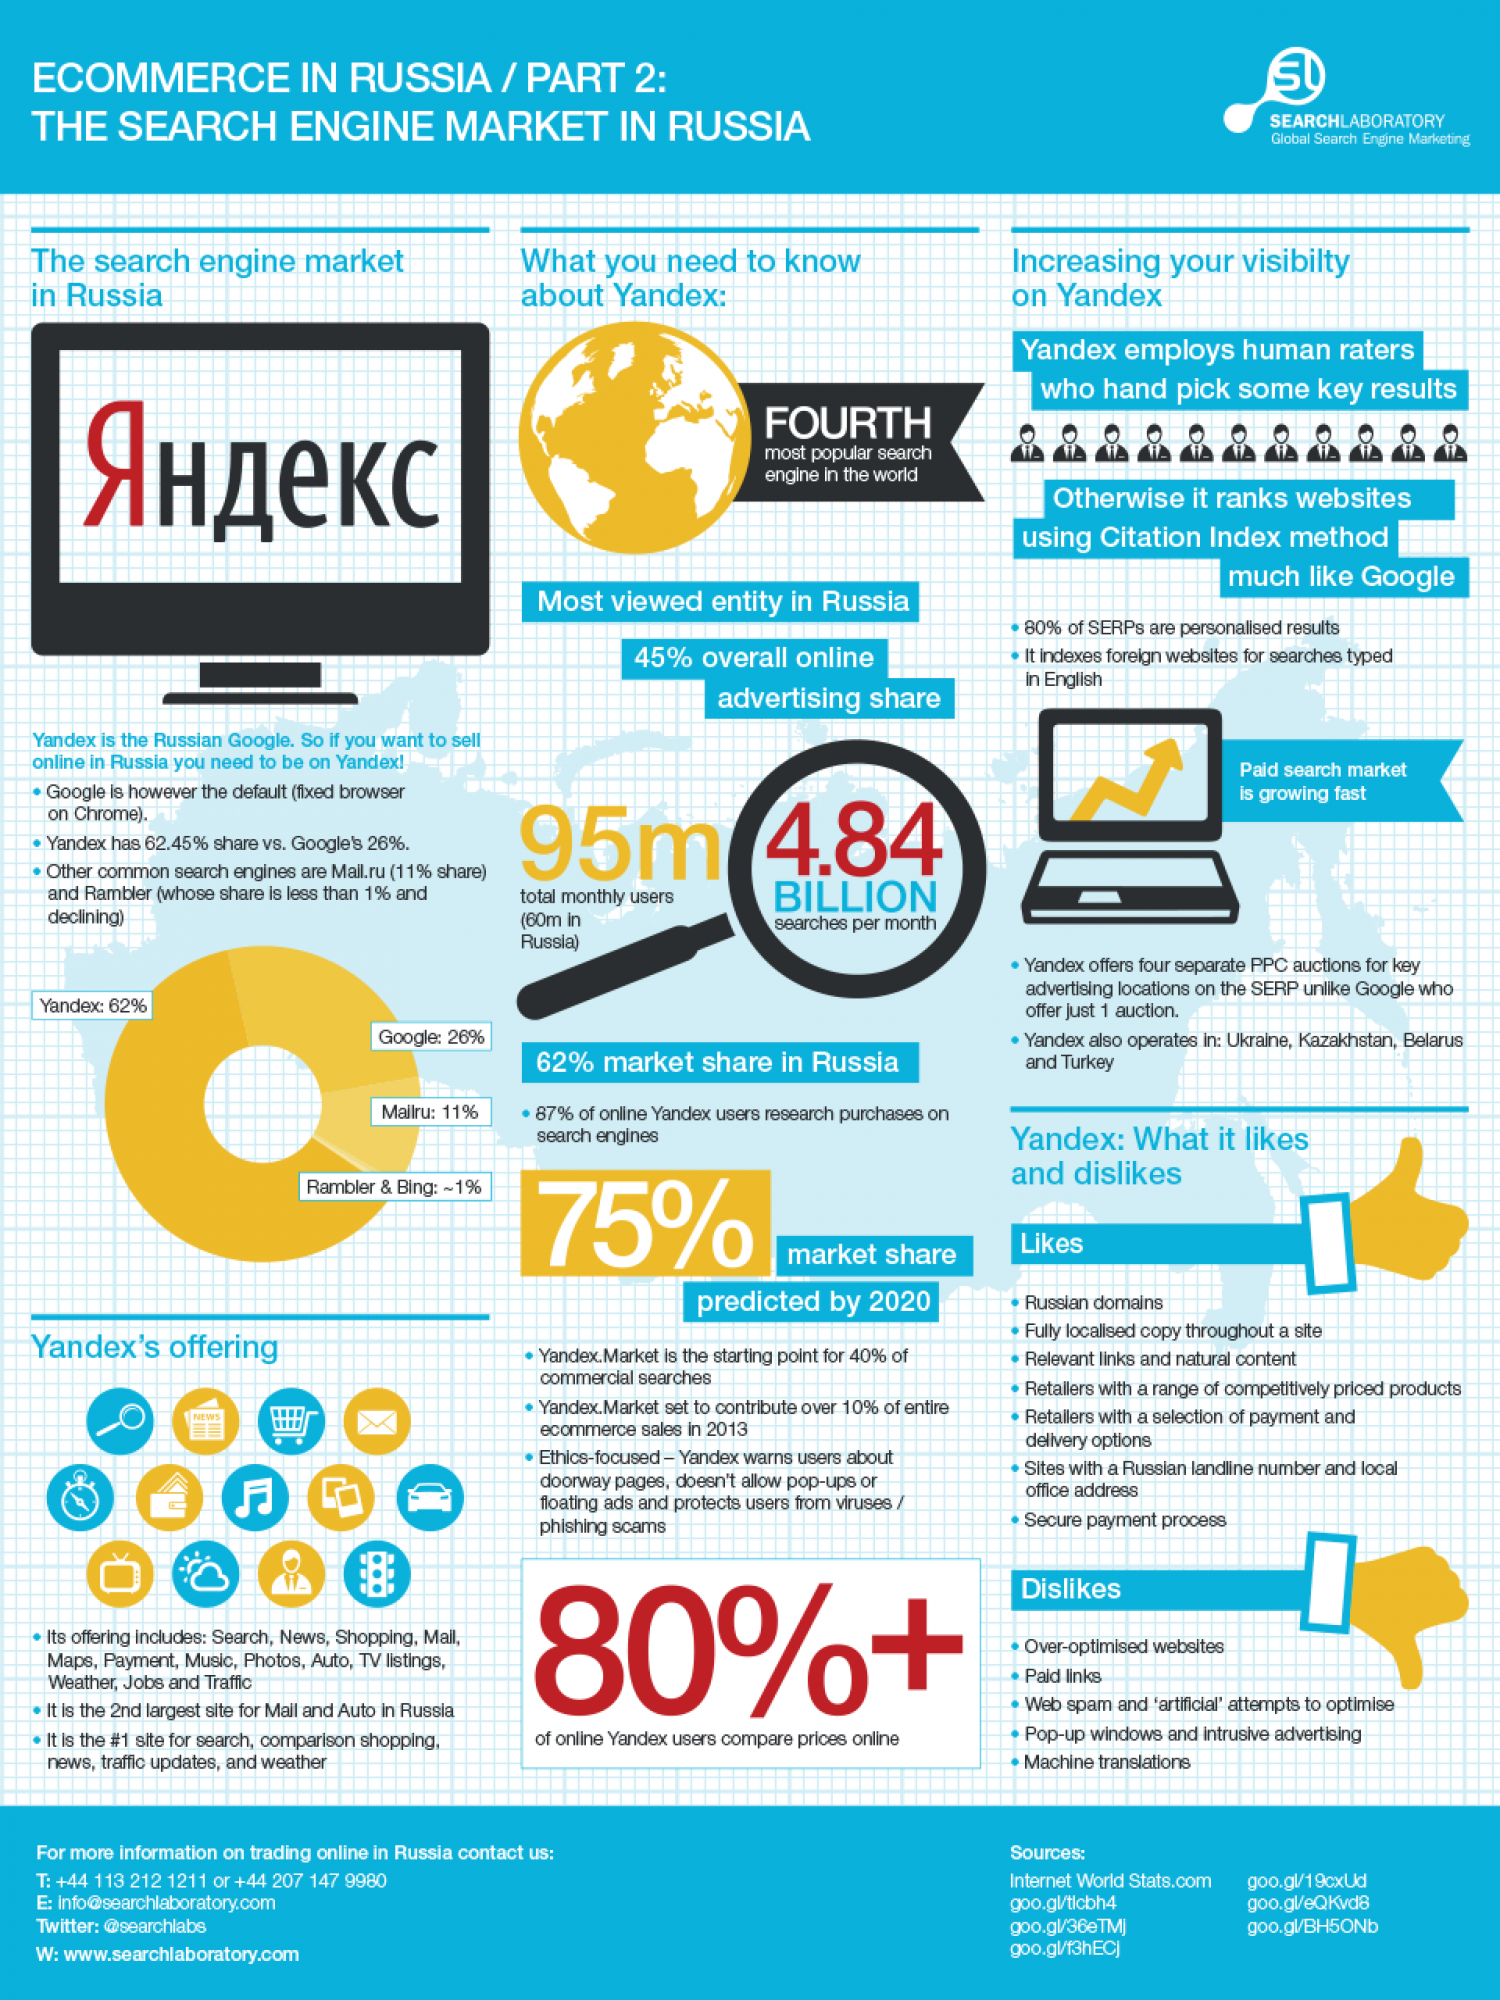 The Russian Search Engine Market Infographic